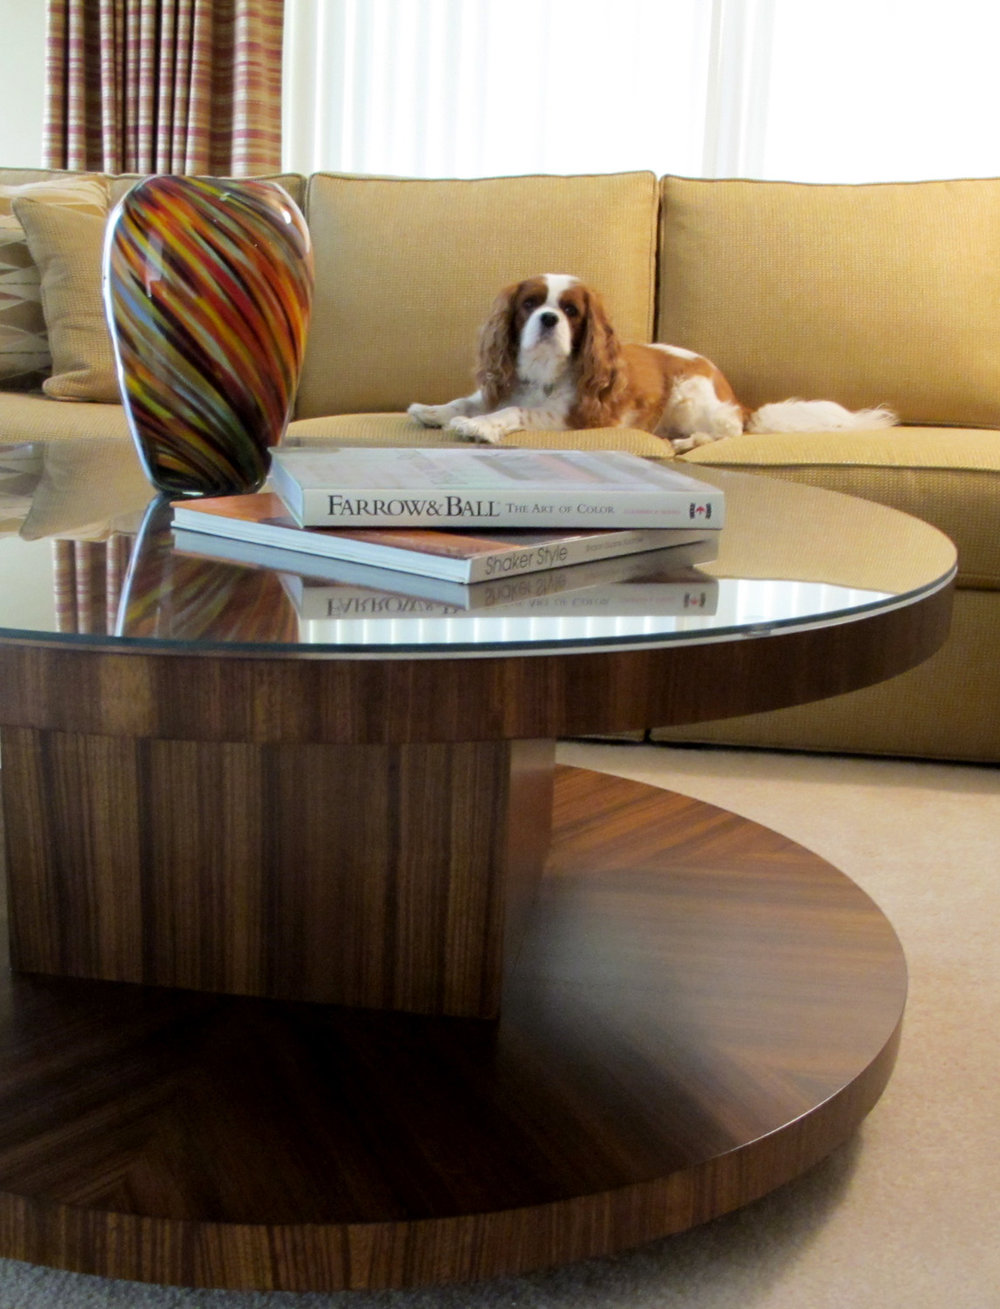 setauket_fr-coffeetable.jpg